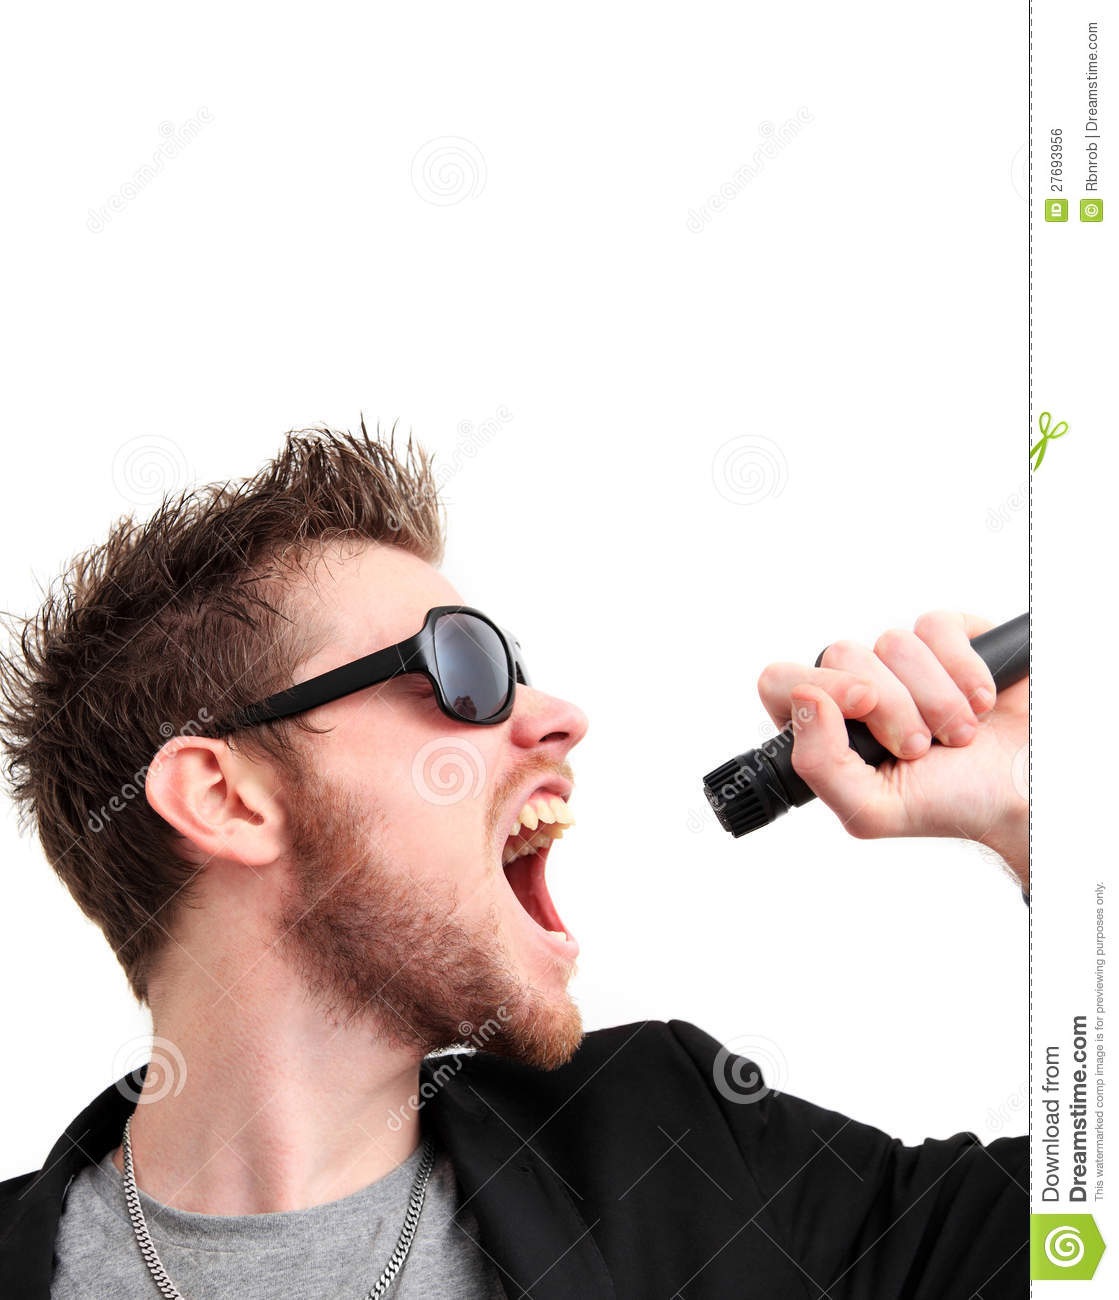 Screaming rocker guy stock photo. Image of indoors, adult